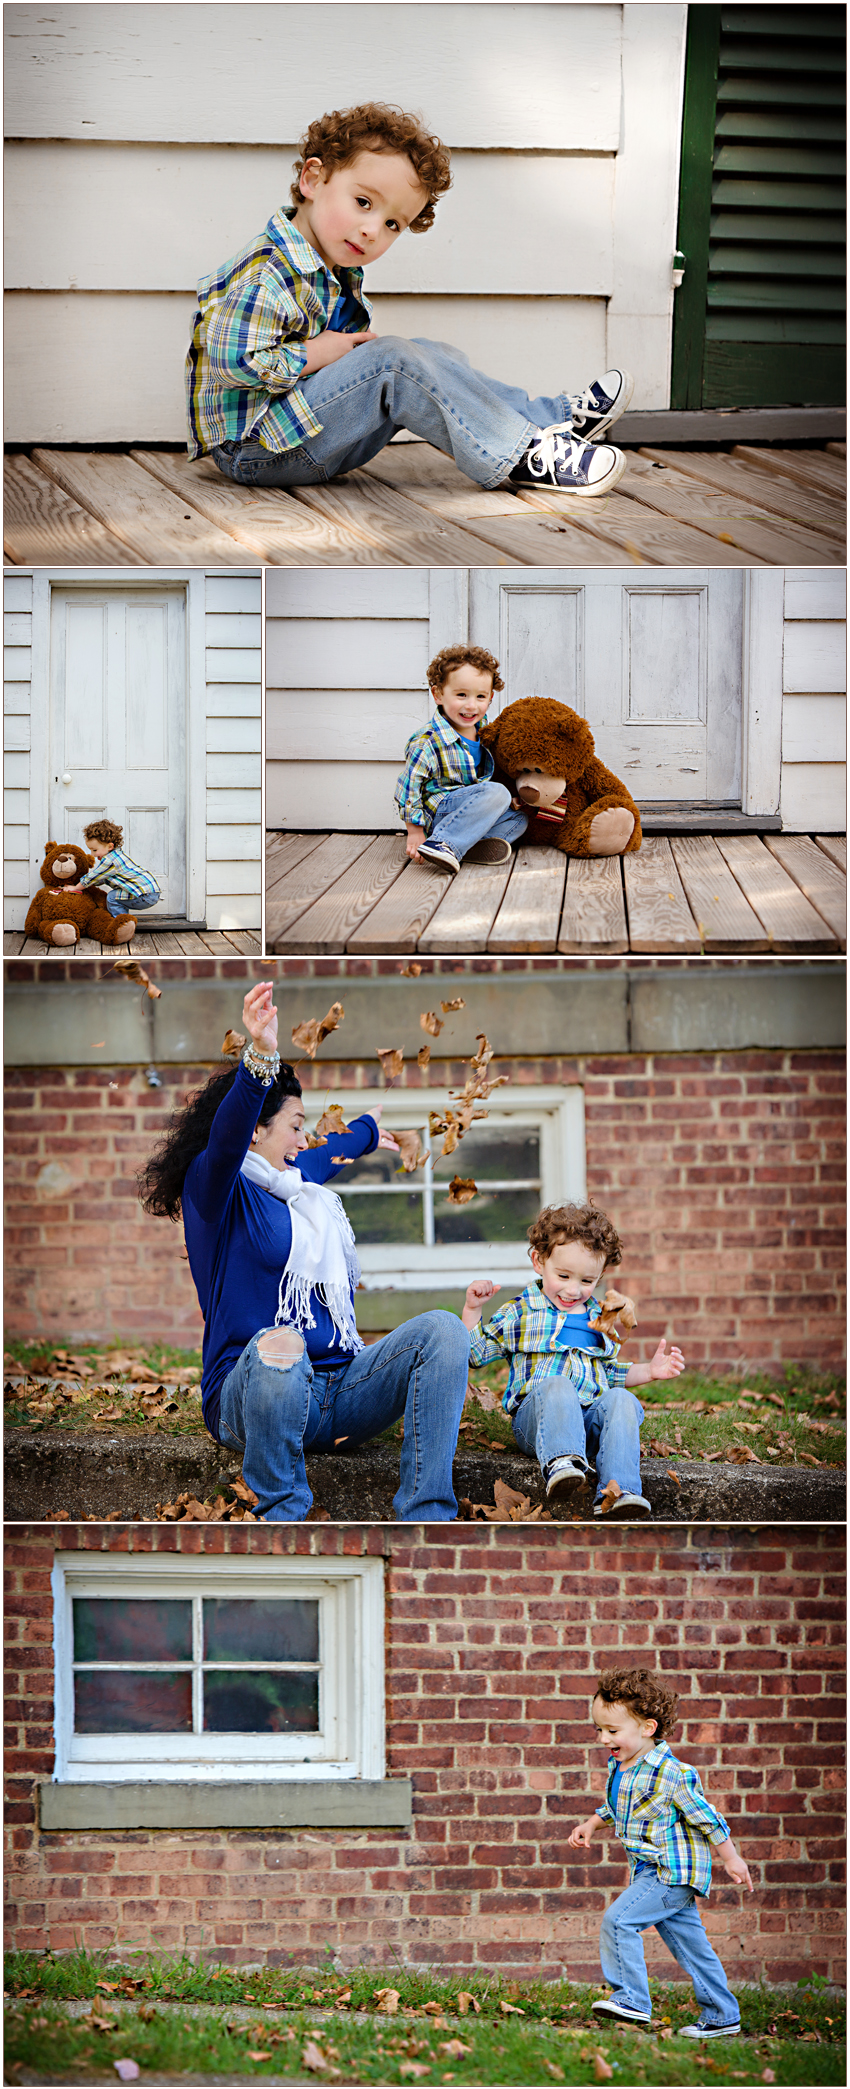 Playful Marvin, North Carolina Family Photographer Smiles Giggles and Fun with Mom and Son